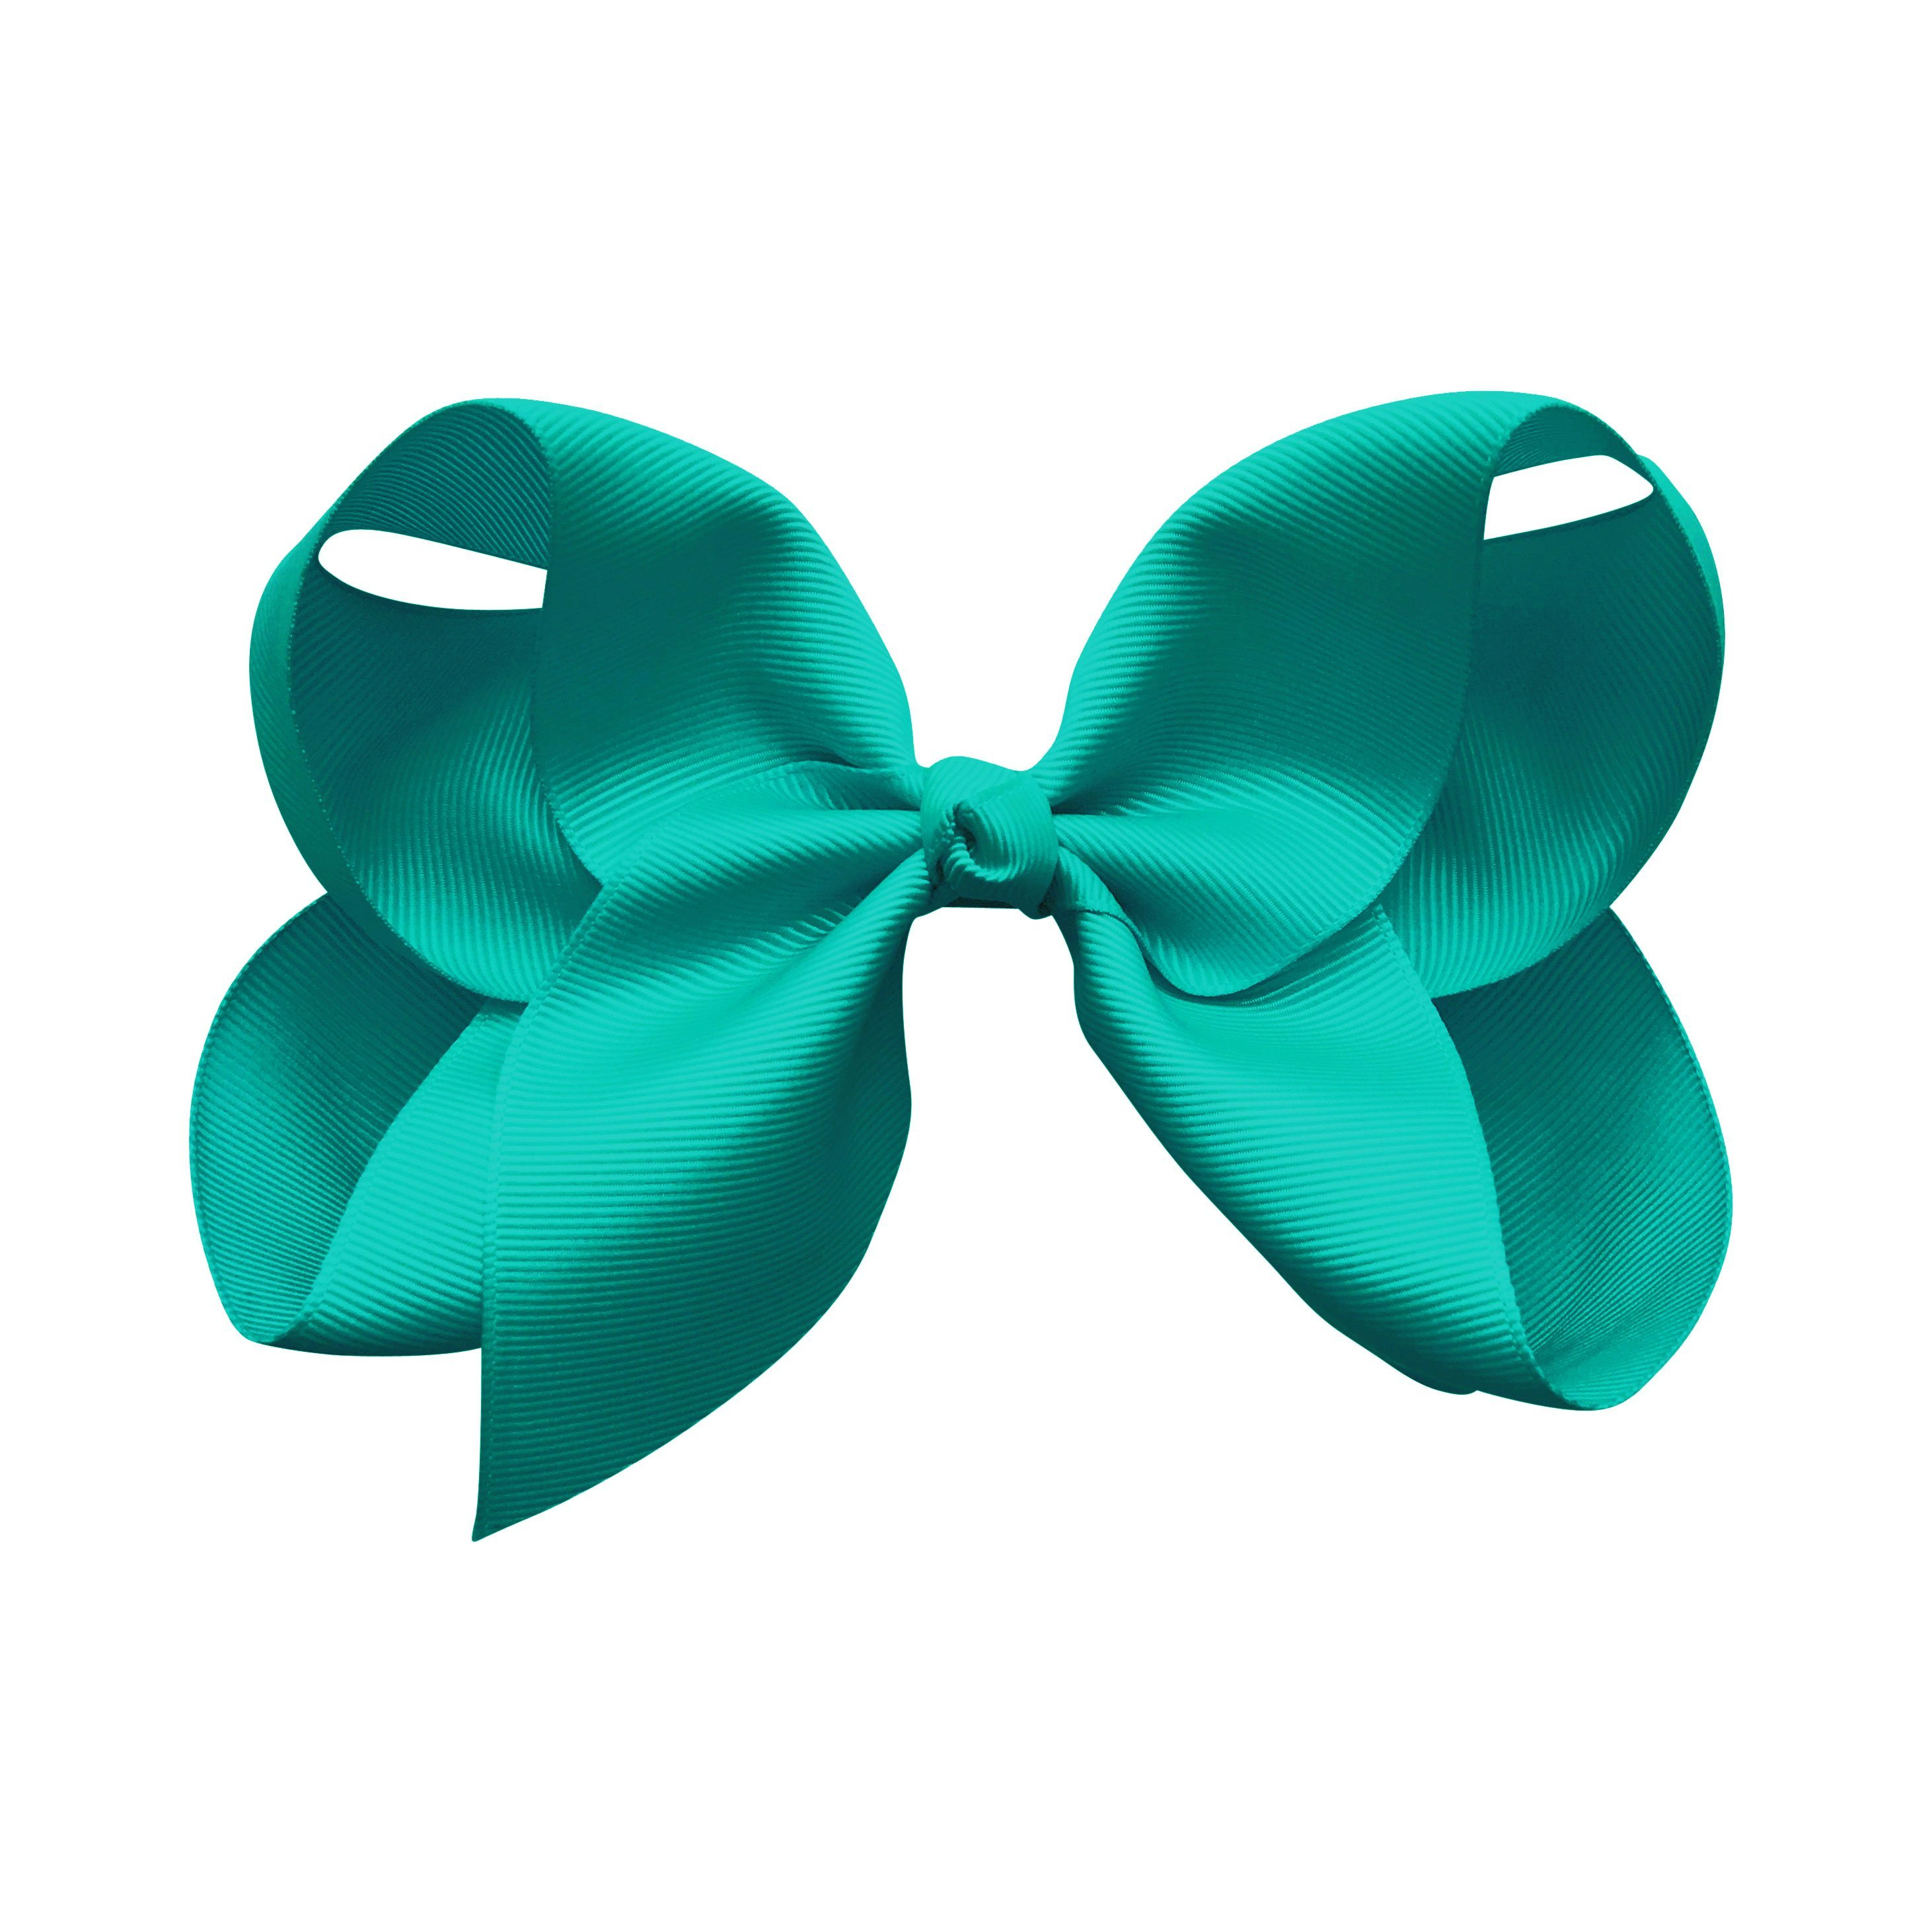 Image of Jumbo Boutique Bow - alligator clip - Jade